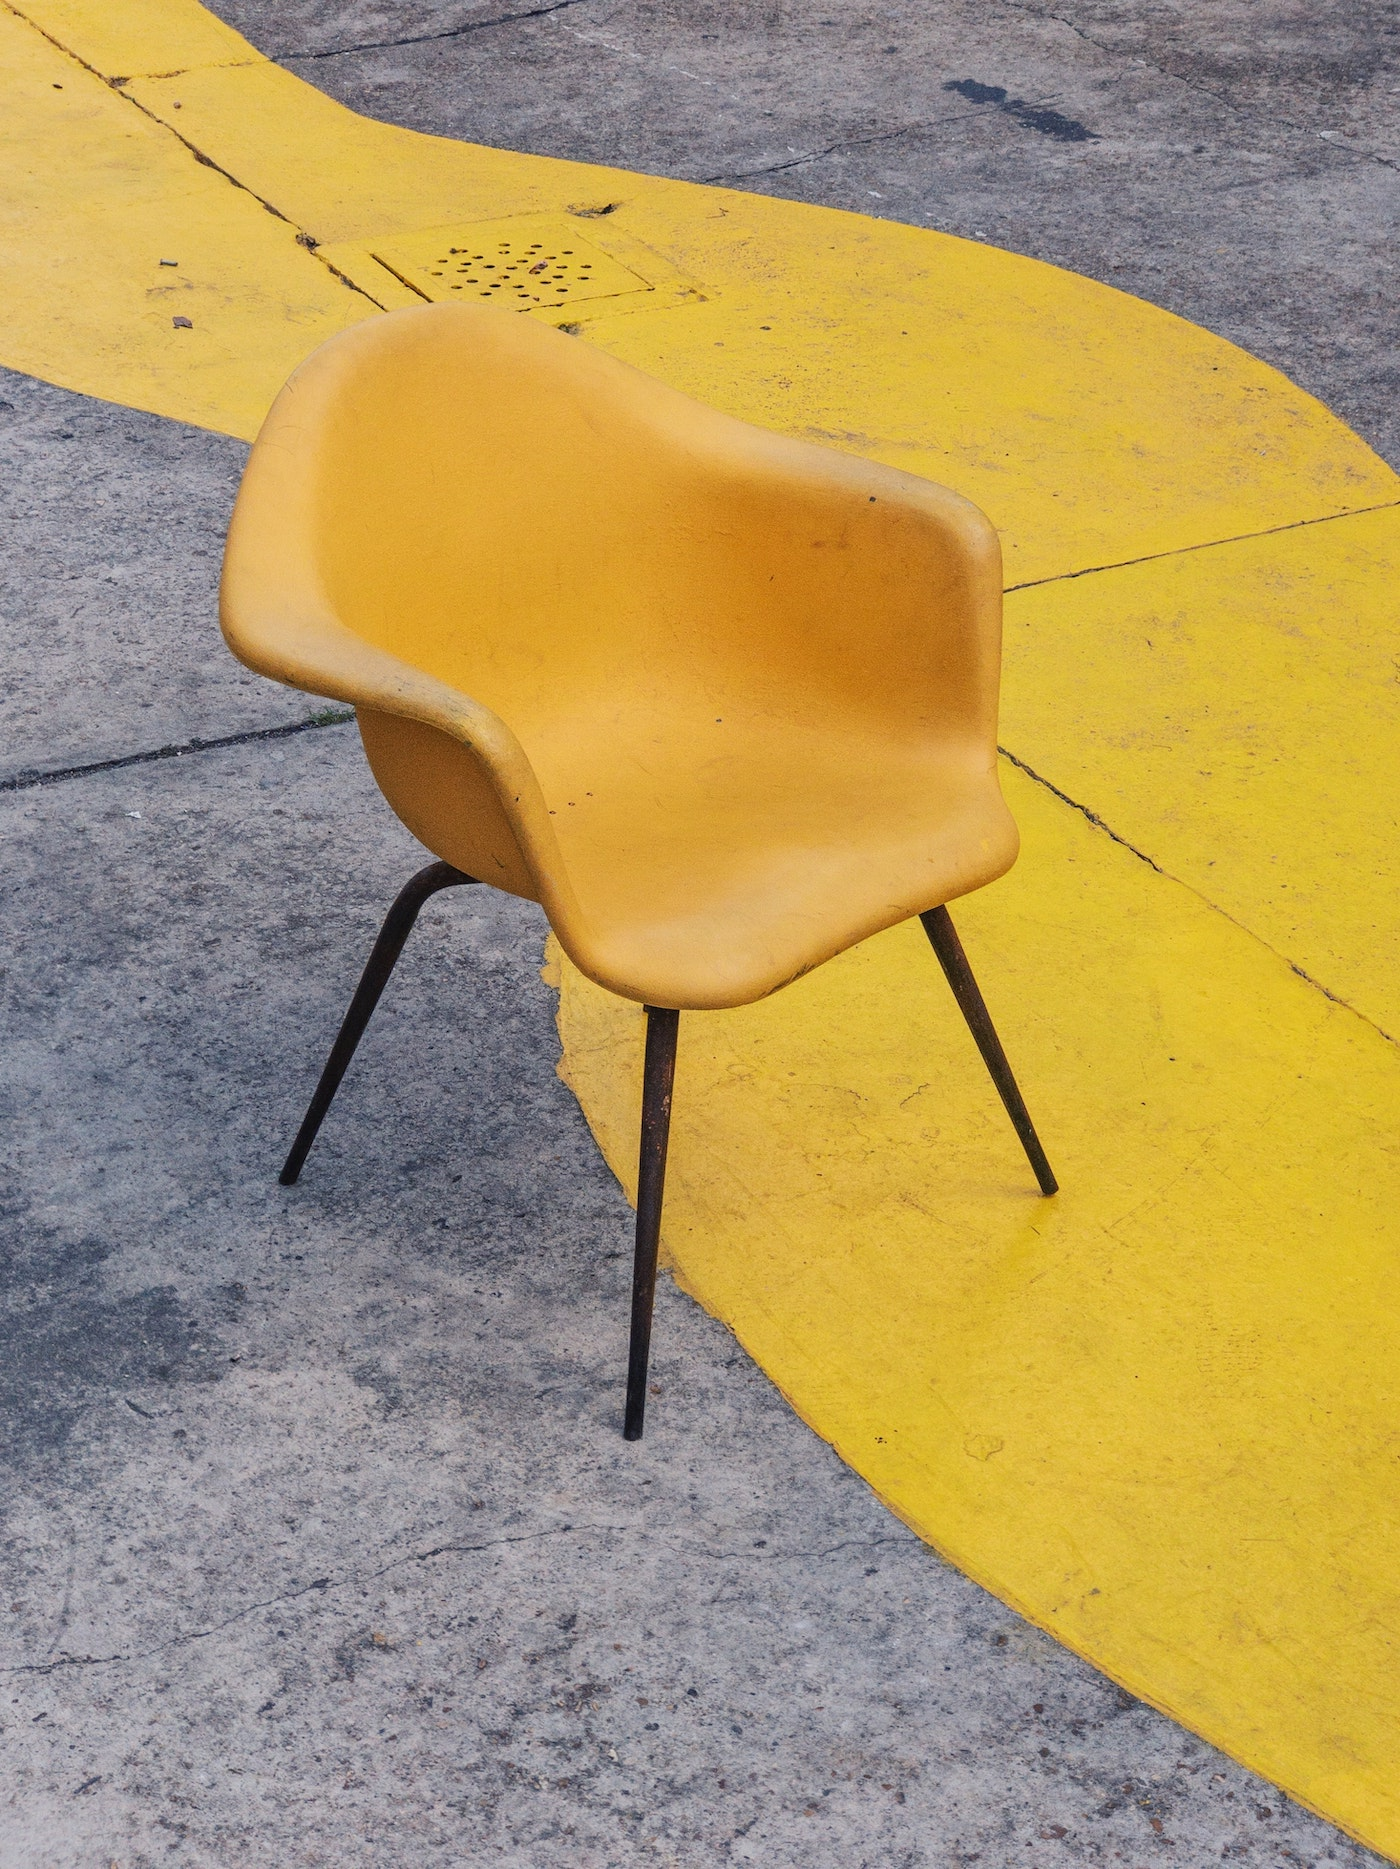 Funky yellow chair